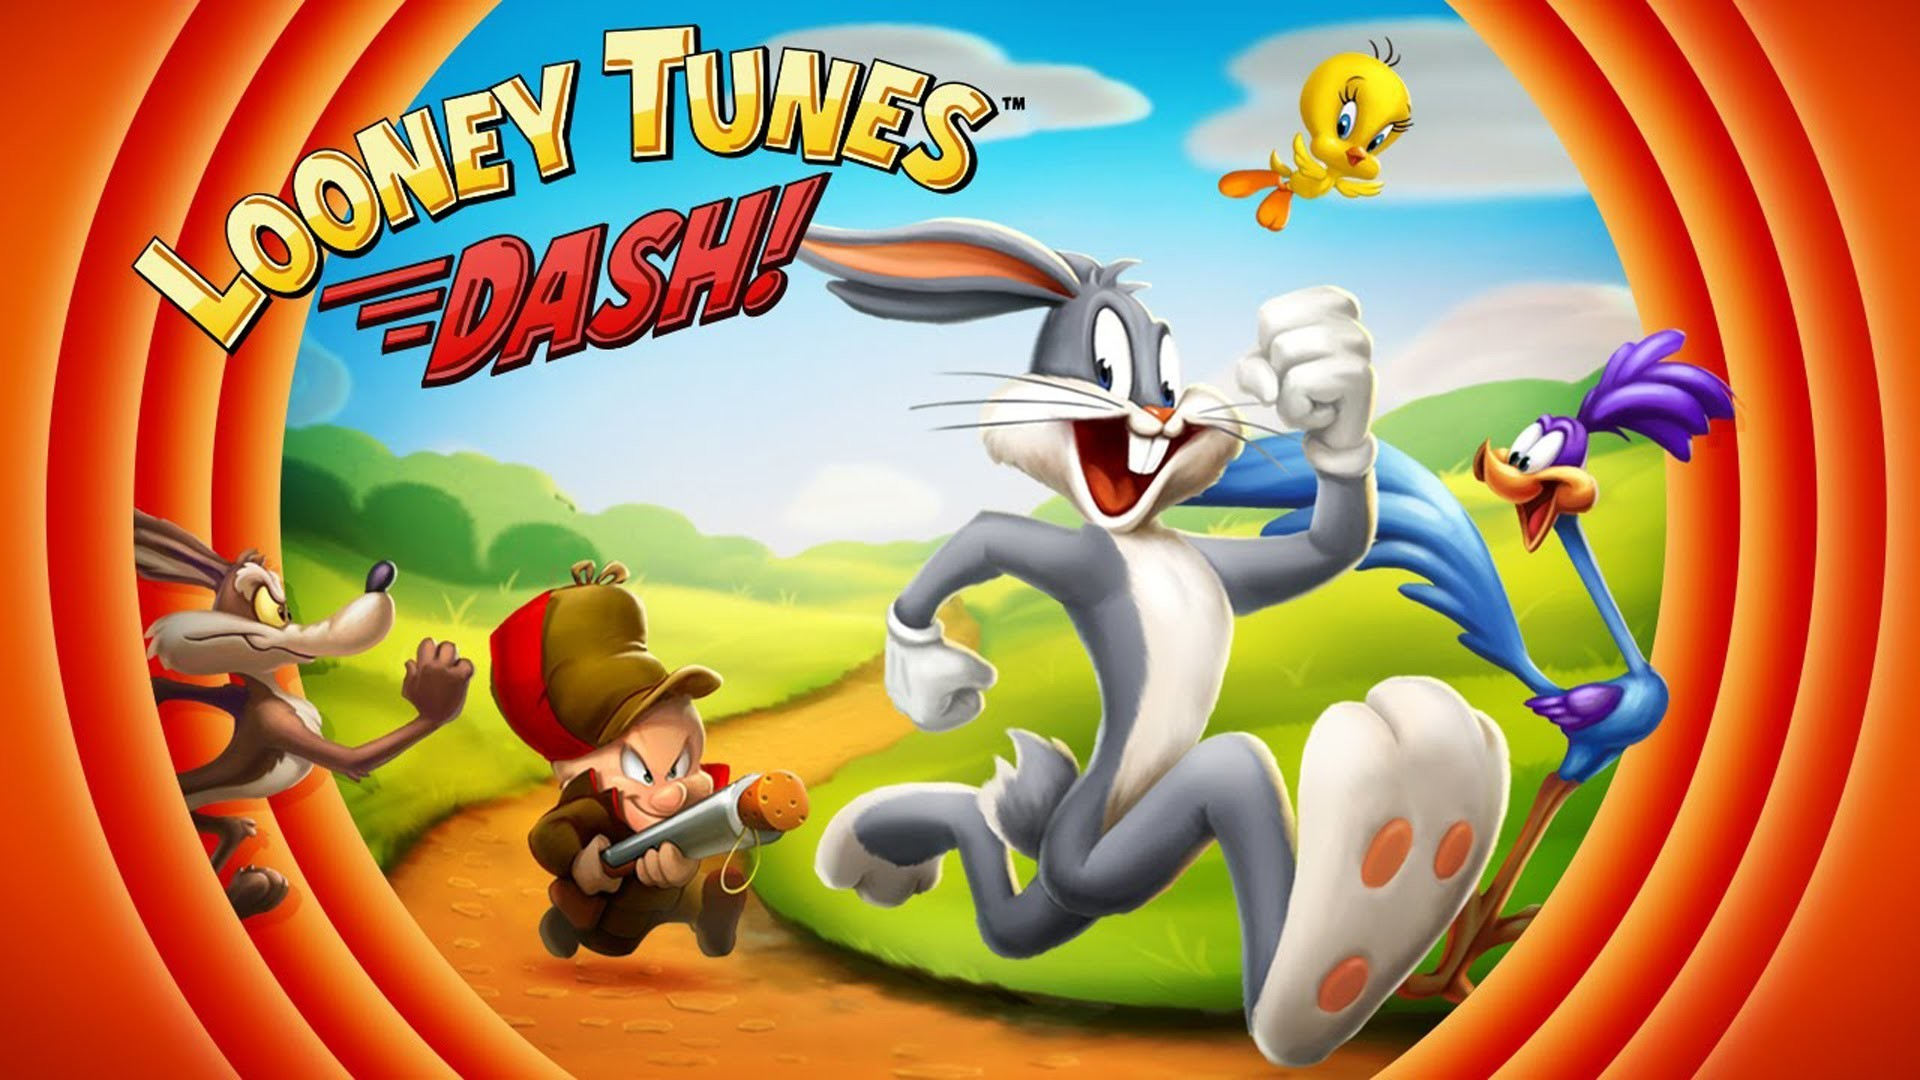 Res: 1920x1080, Looney Tunes wallpaper .